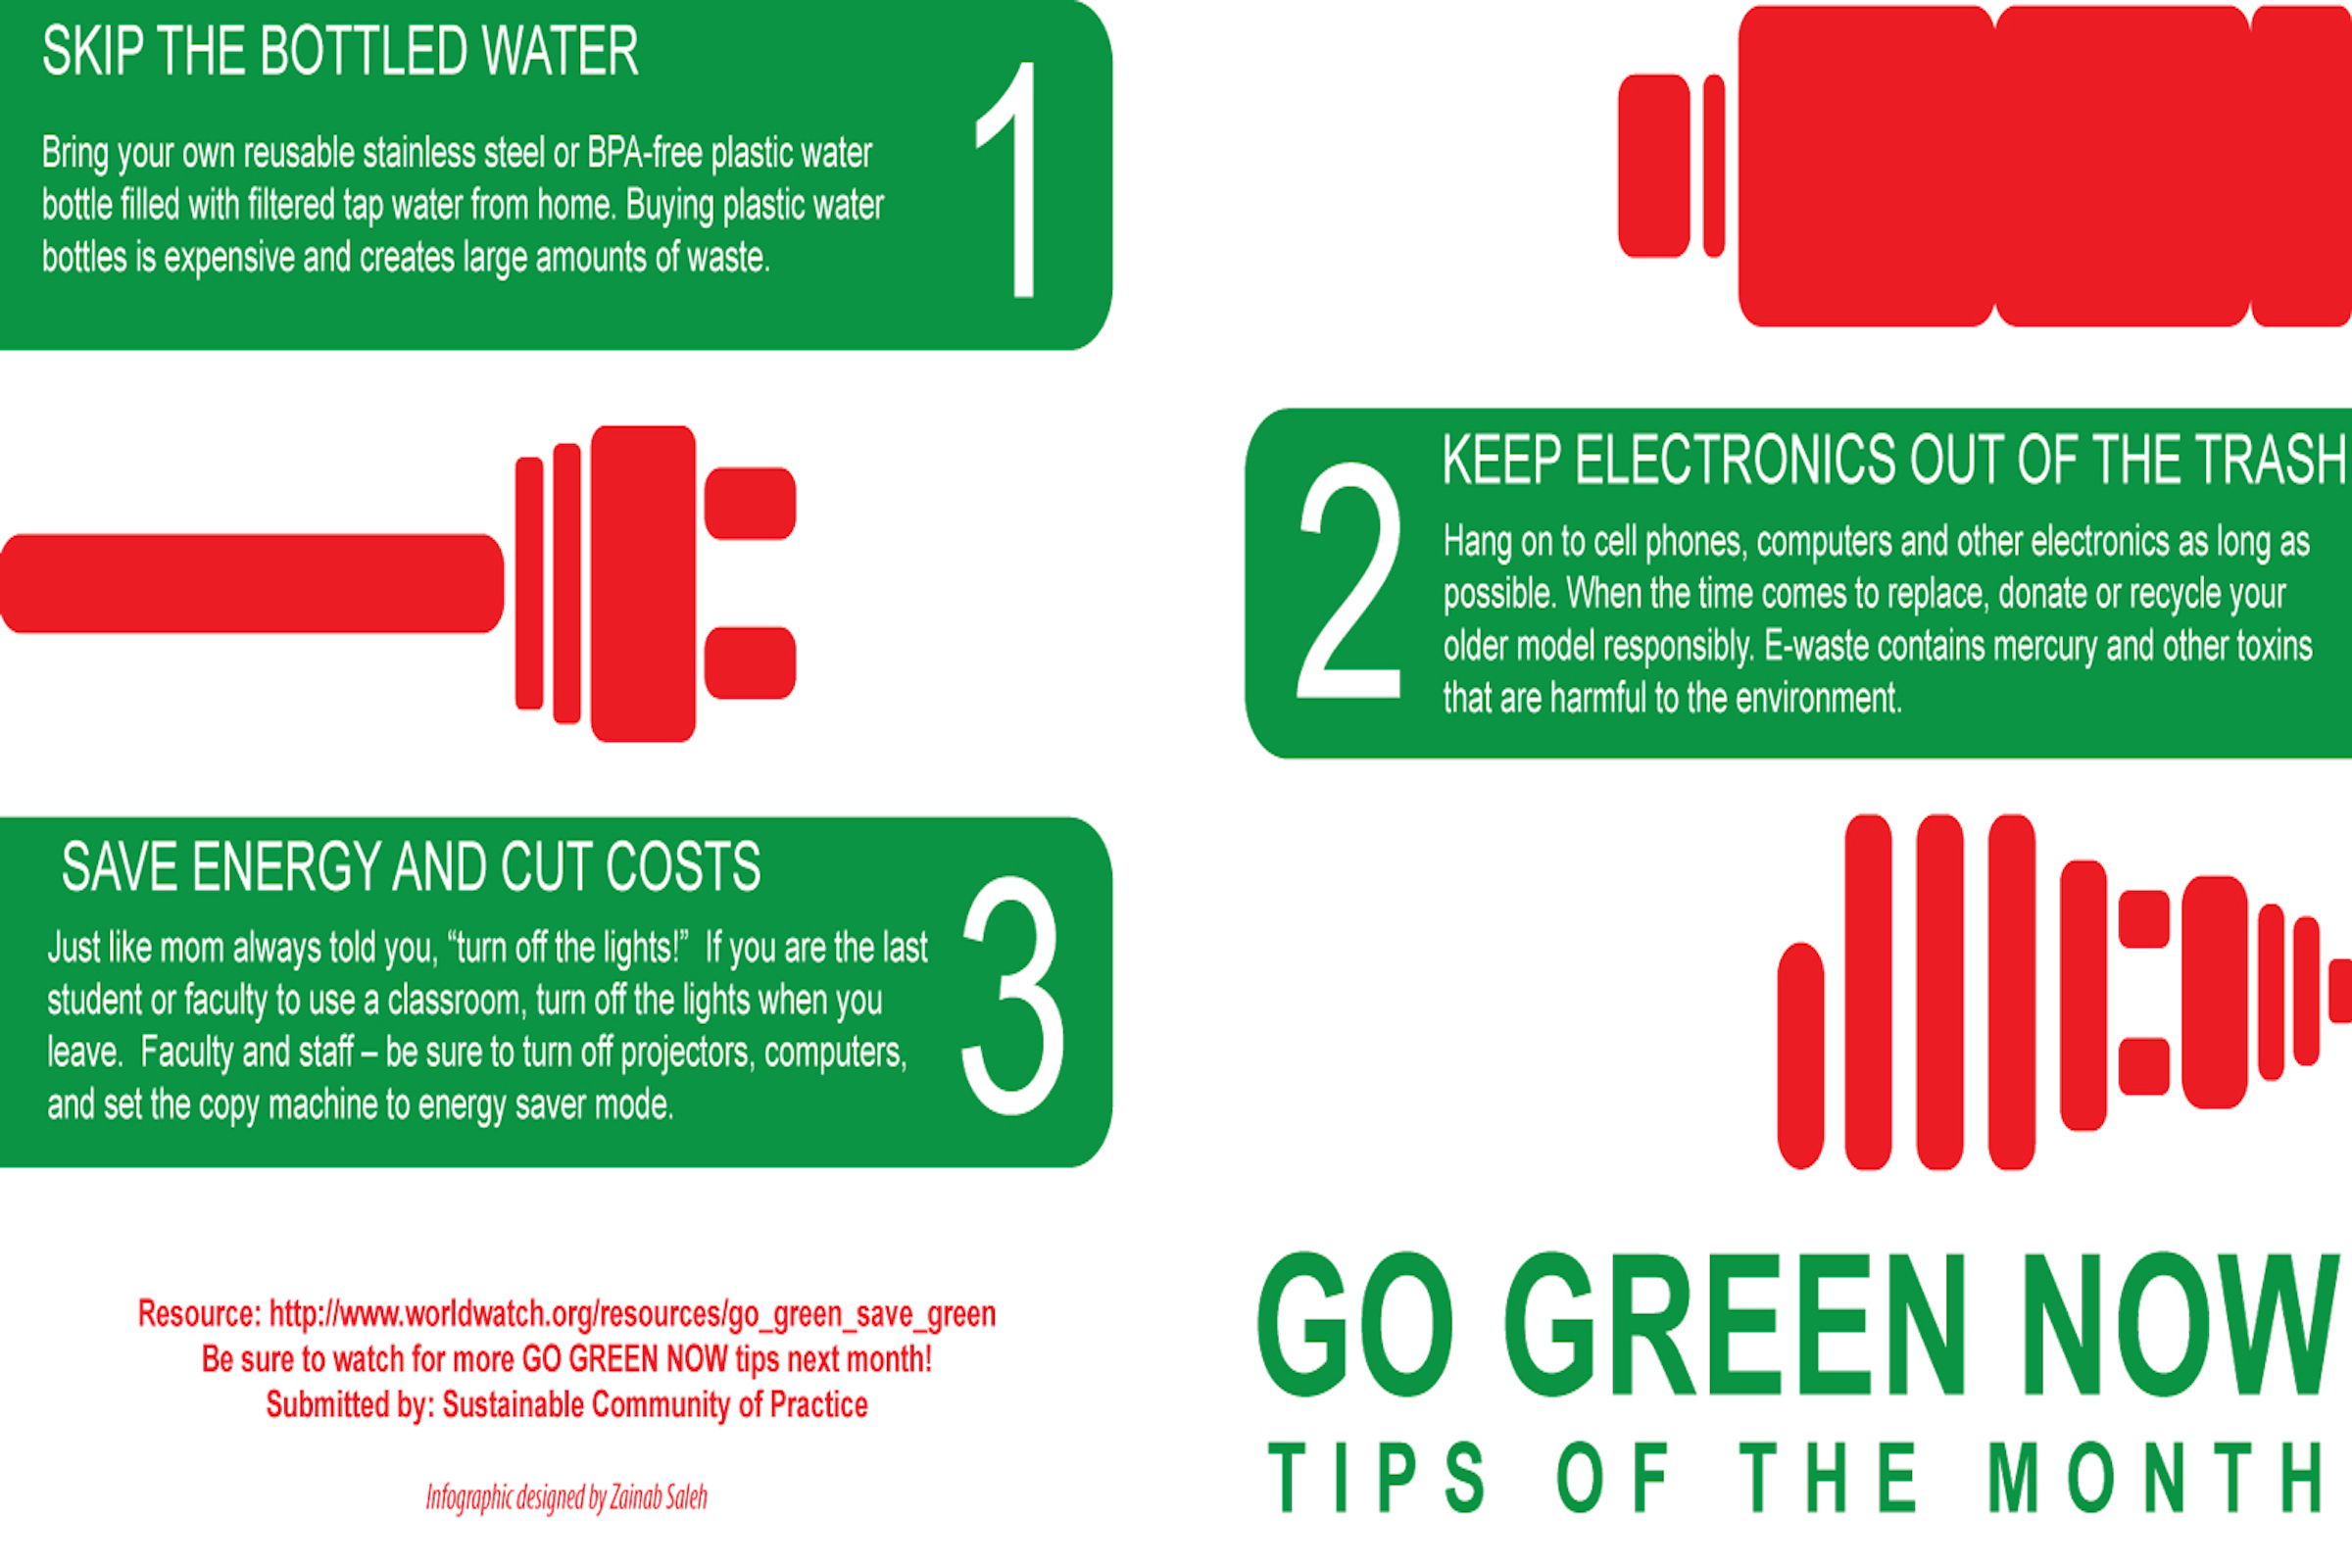 Go Green infographic giving tips on saving energy, recycling, and reuse.